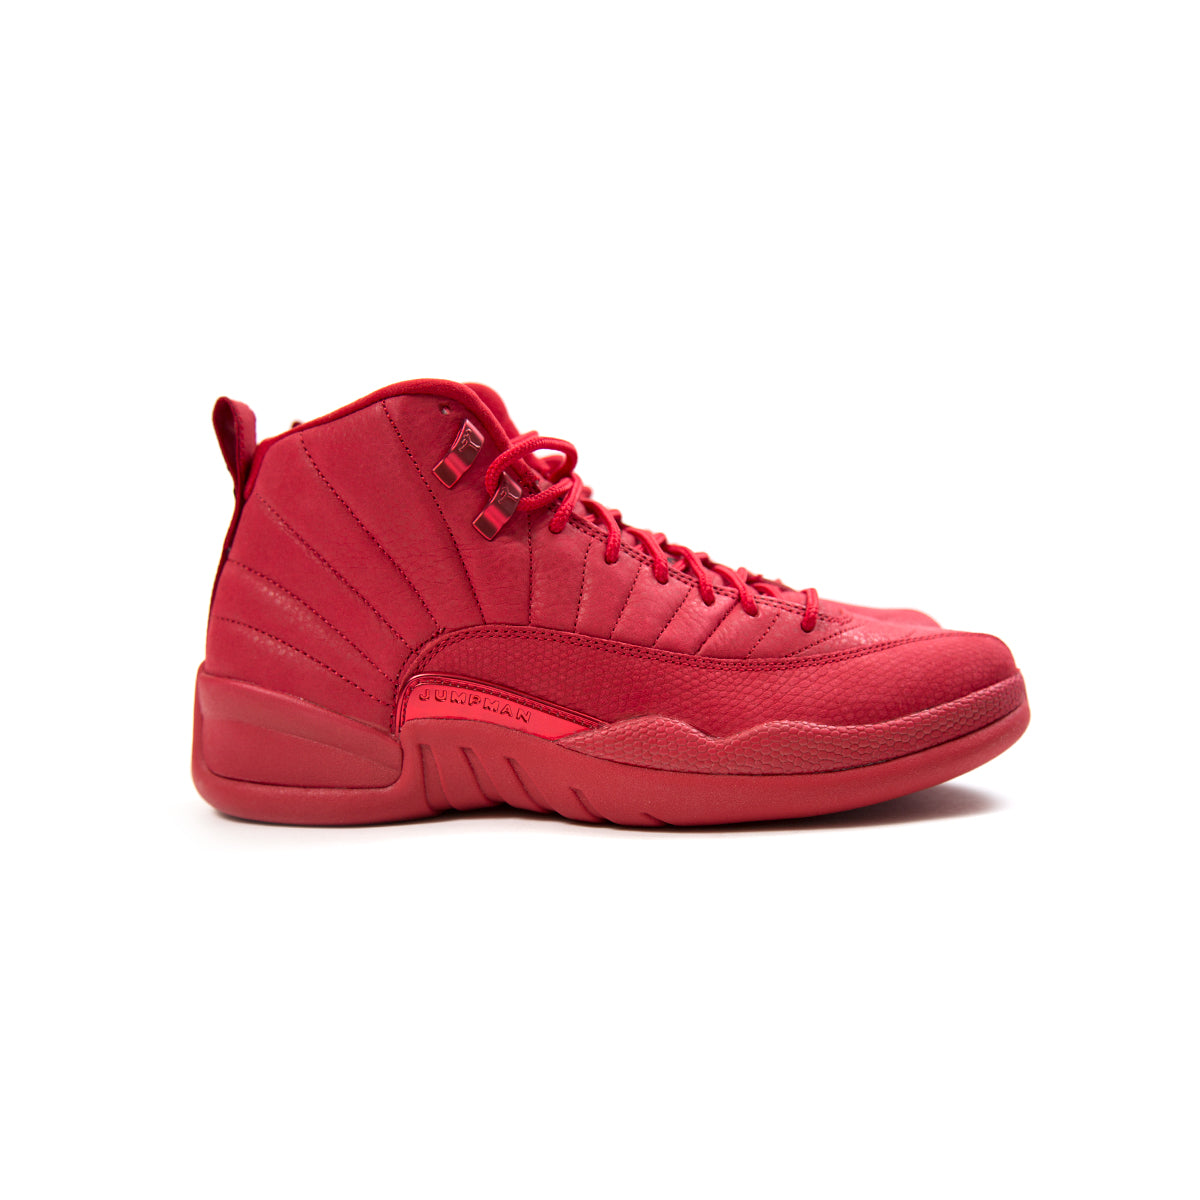 3053d56712d ... clearance conceptsintl nike air jordan 12 retro gym red black gym red  1eddf 9019c